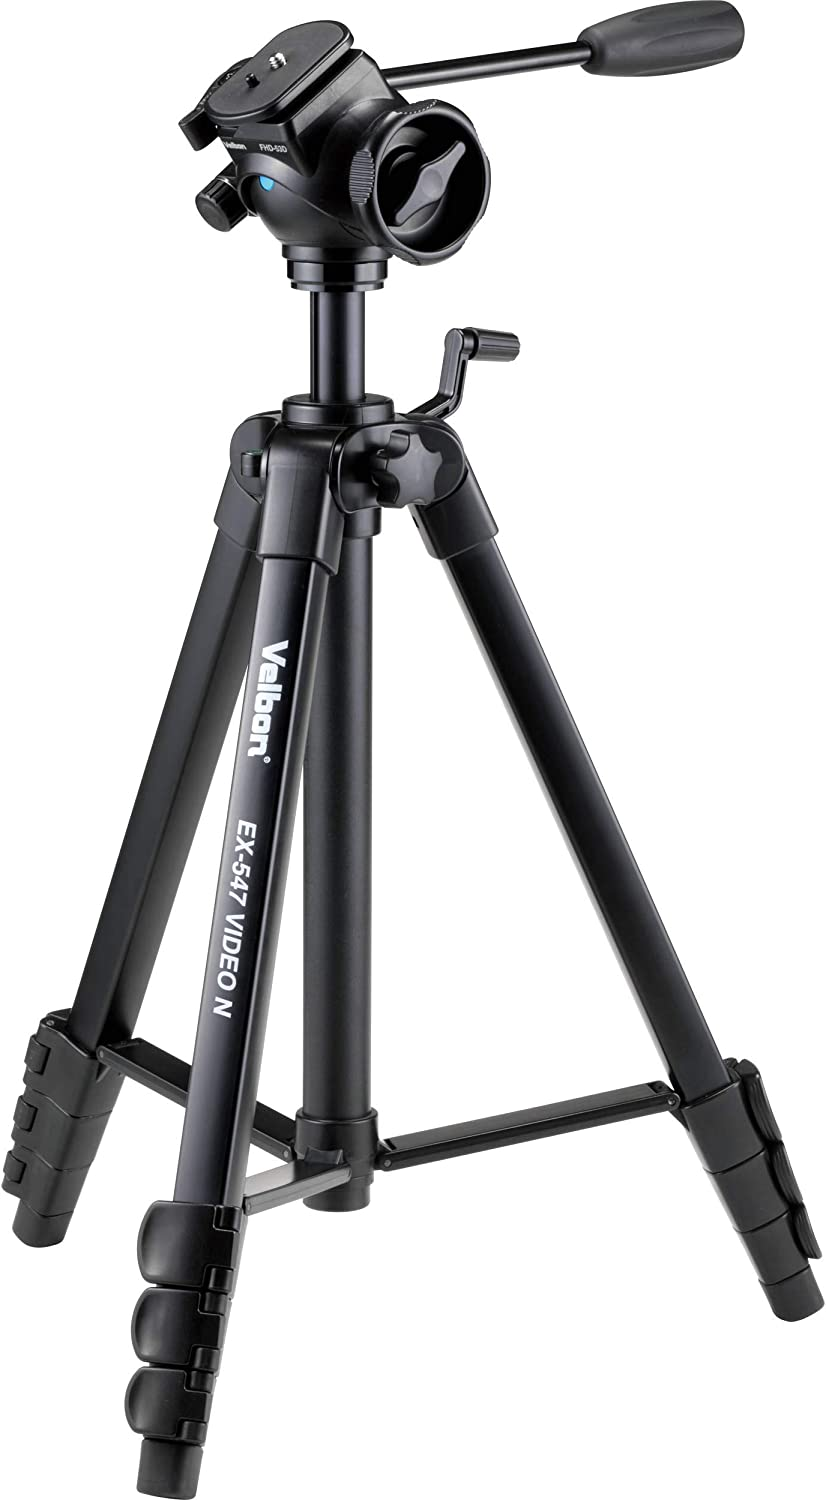 Black Velbon M47 Tripod with Fluid Video Head